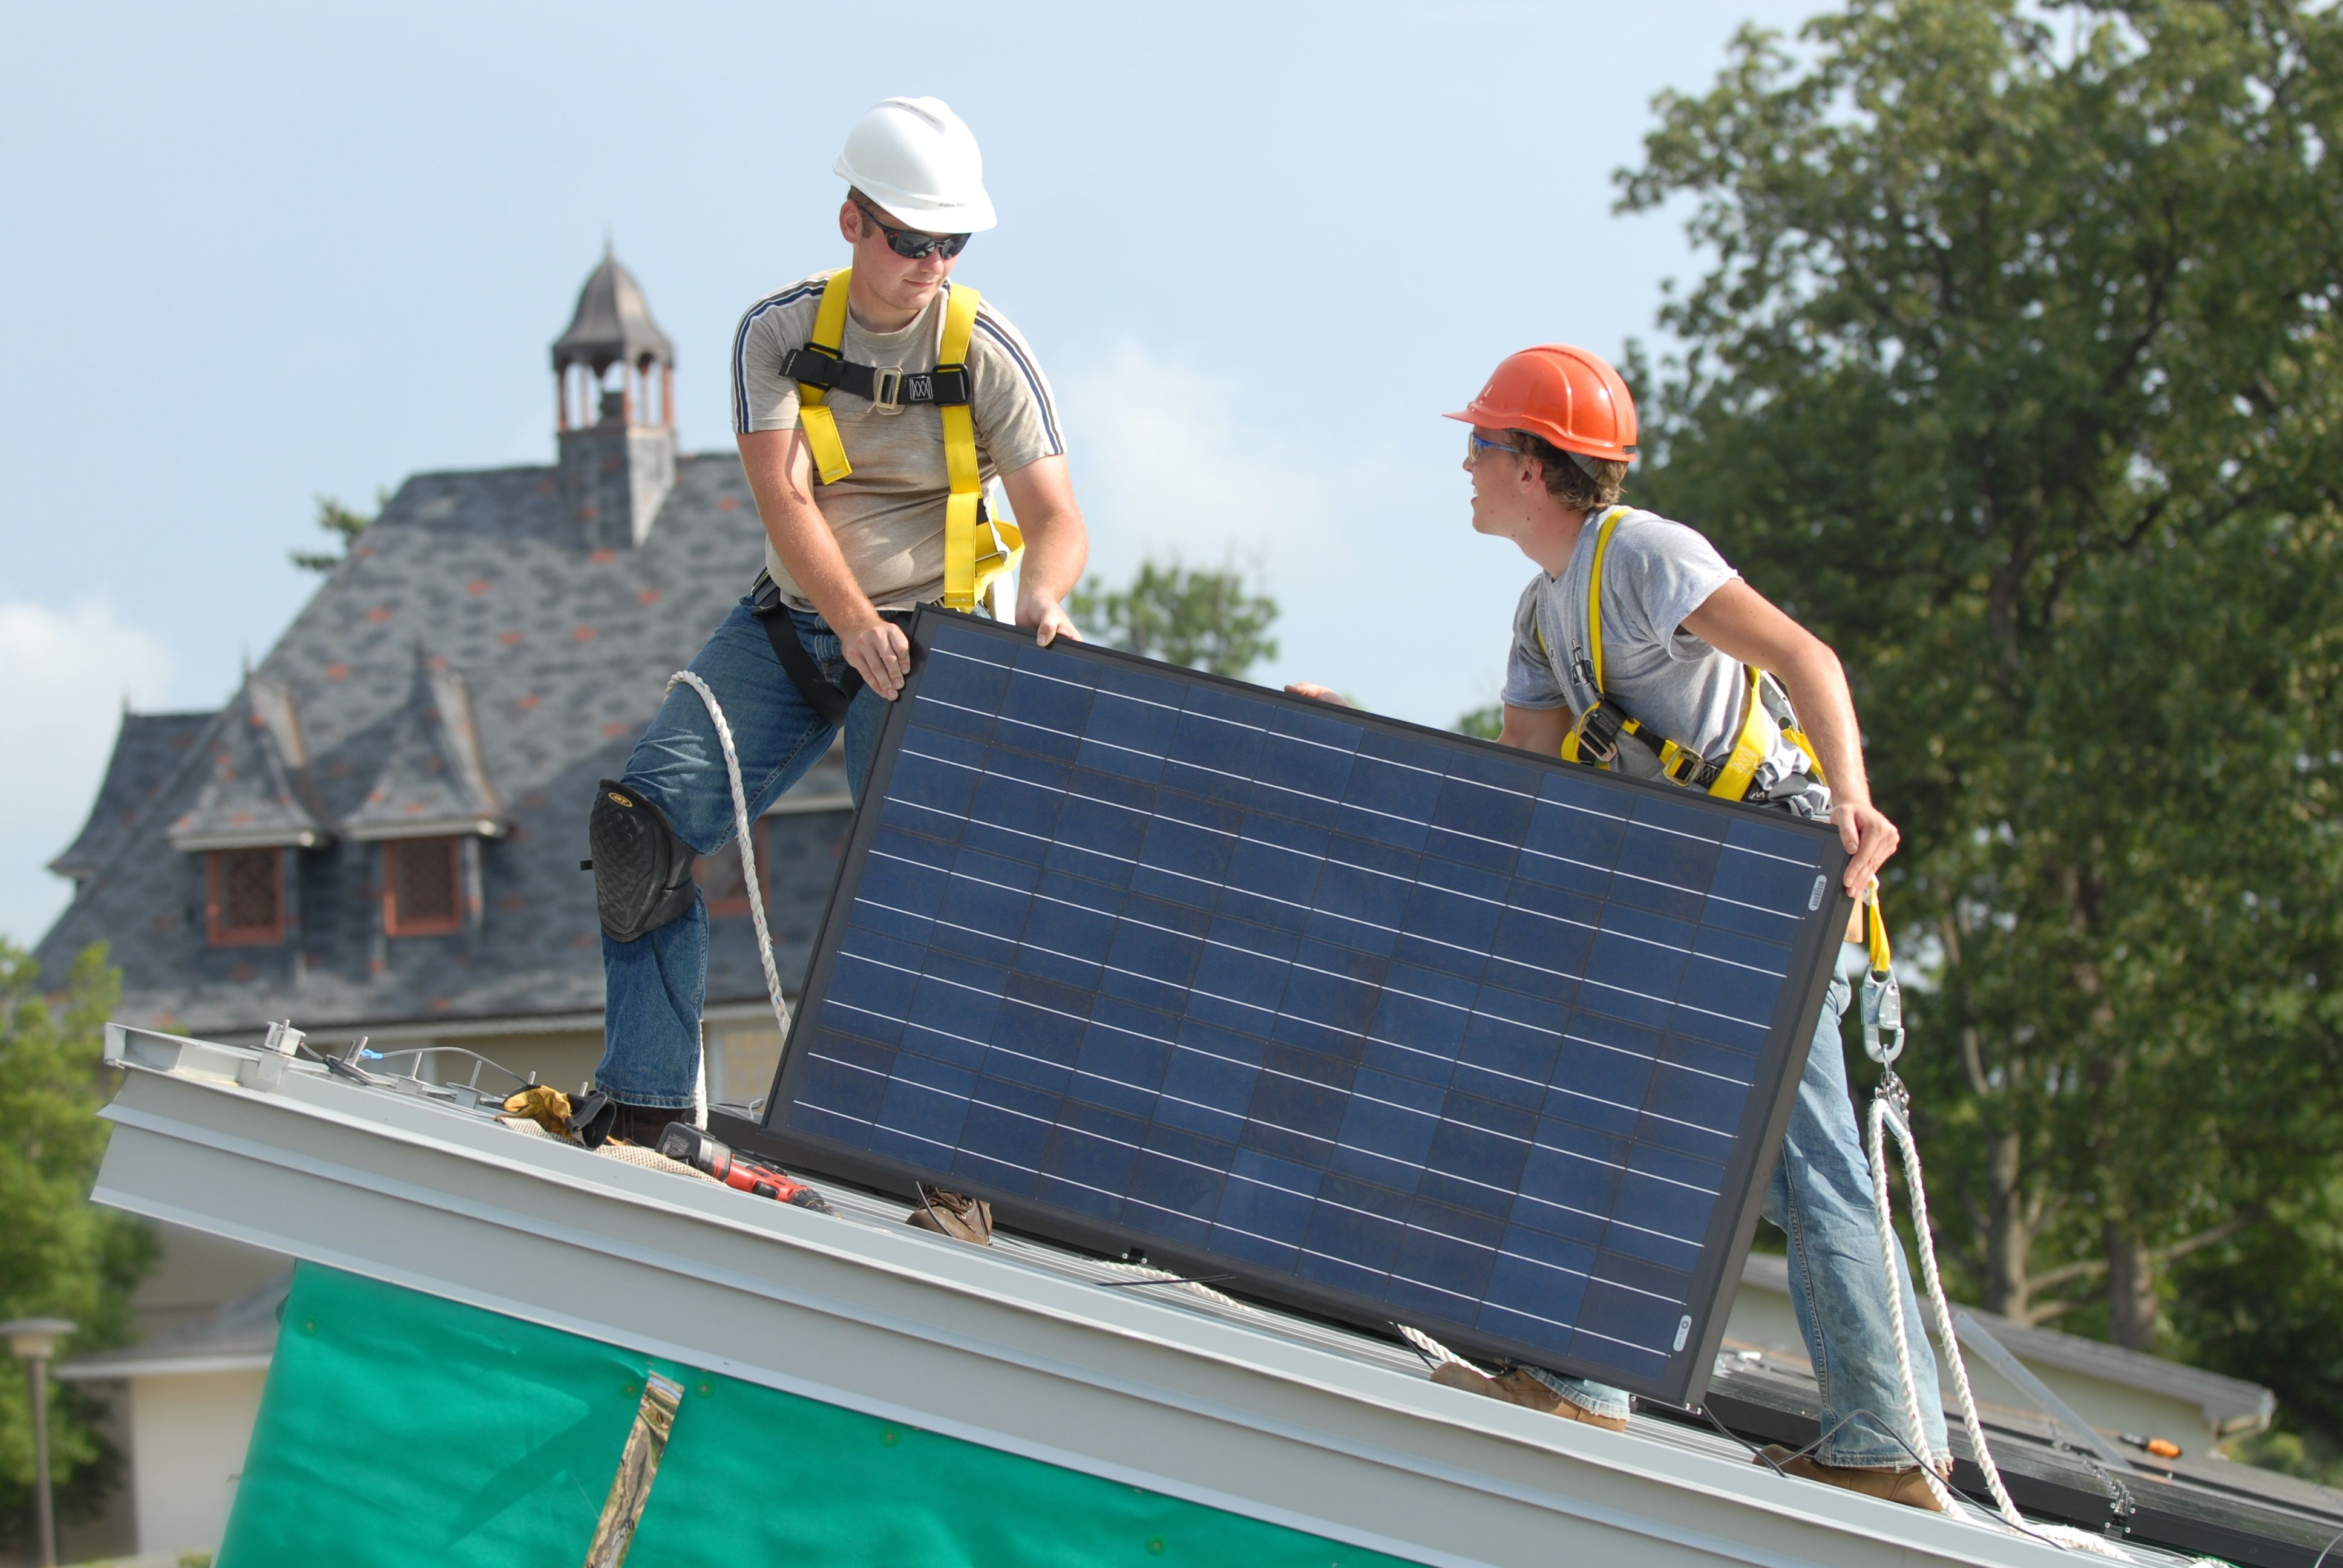 Can my hoa prevent me from going solar with images